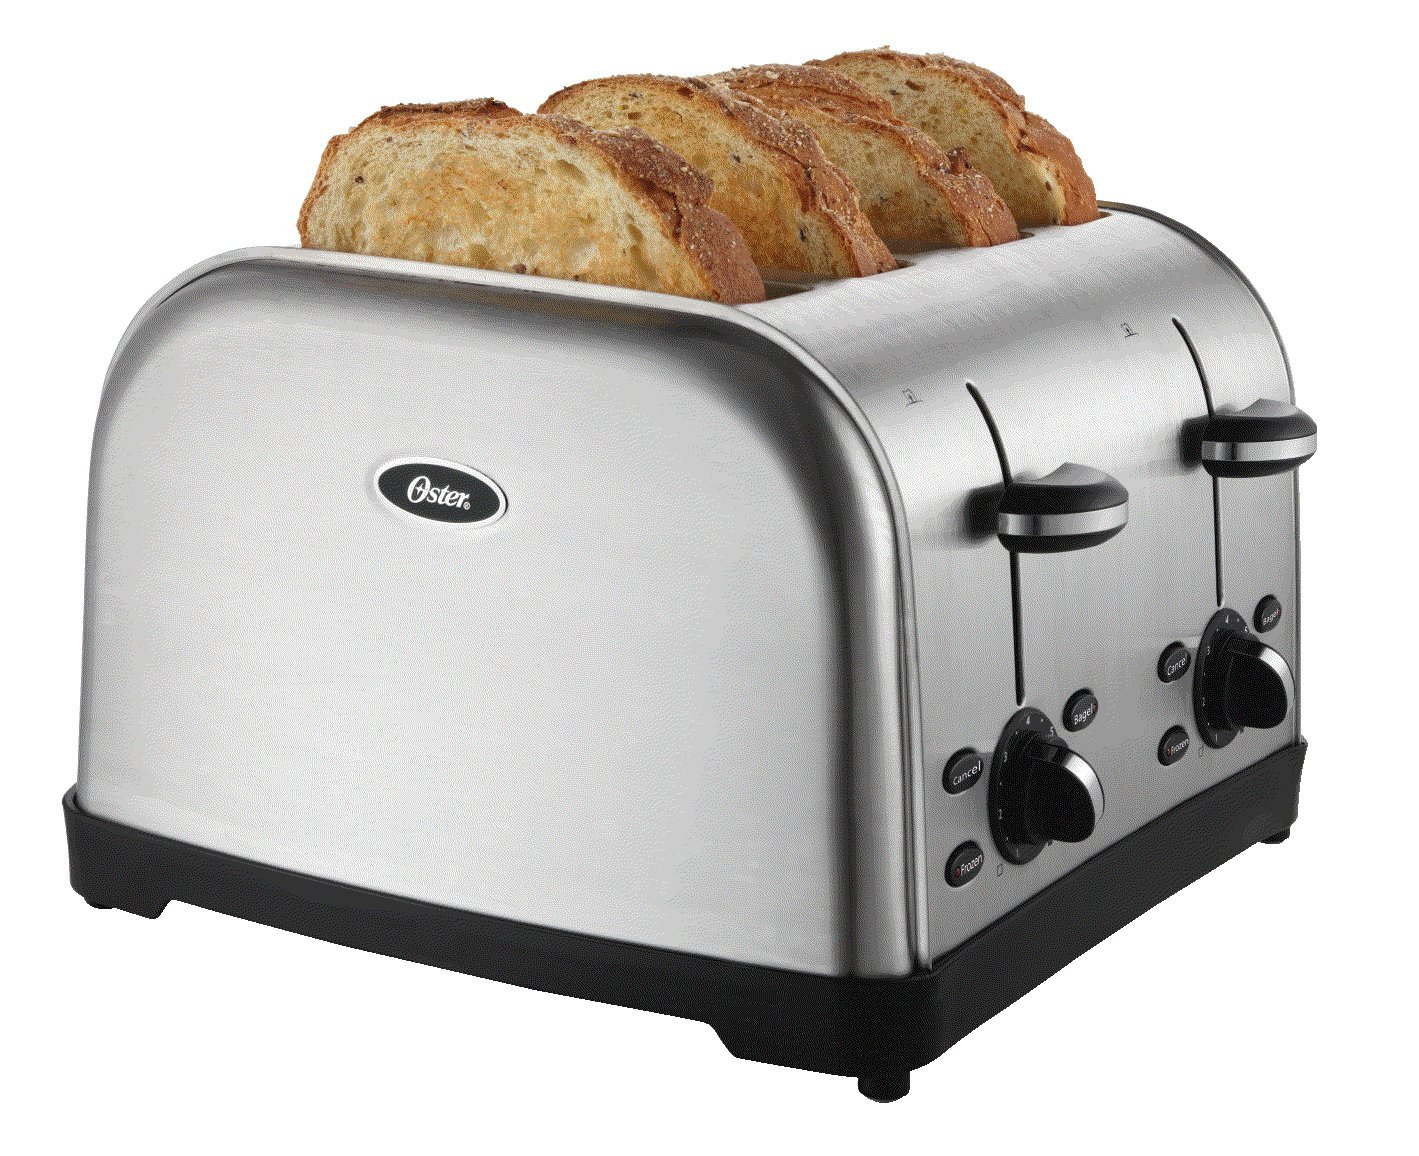 Amazon.com: Oster TSSTTRWF4S 4-Slice Toaster: Kitchen & Dining | {Toaster 11}